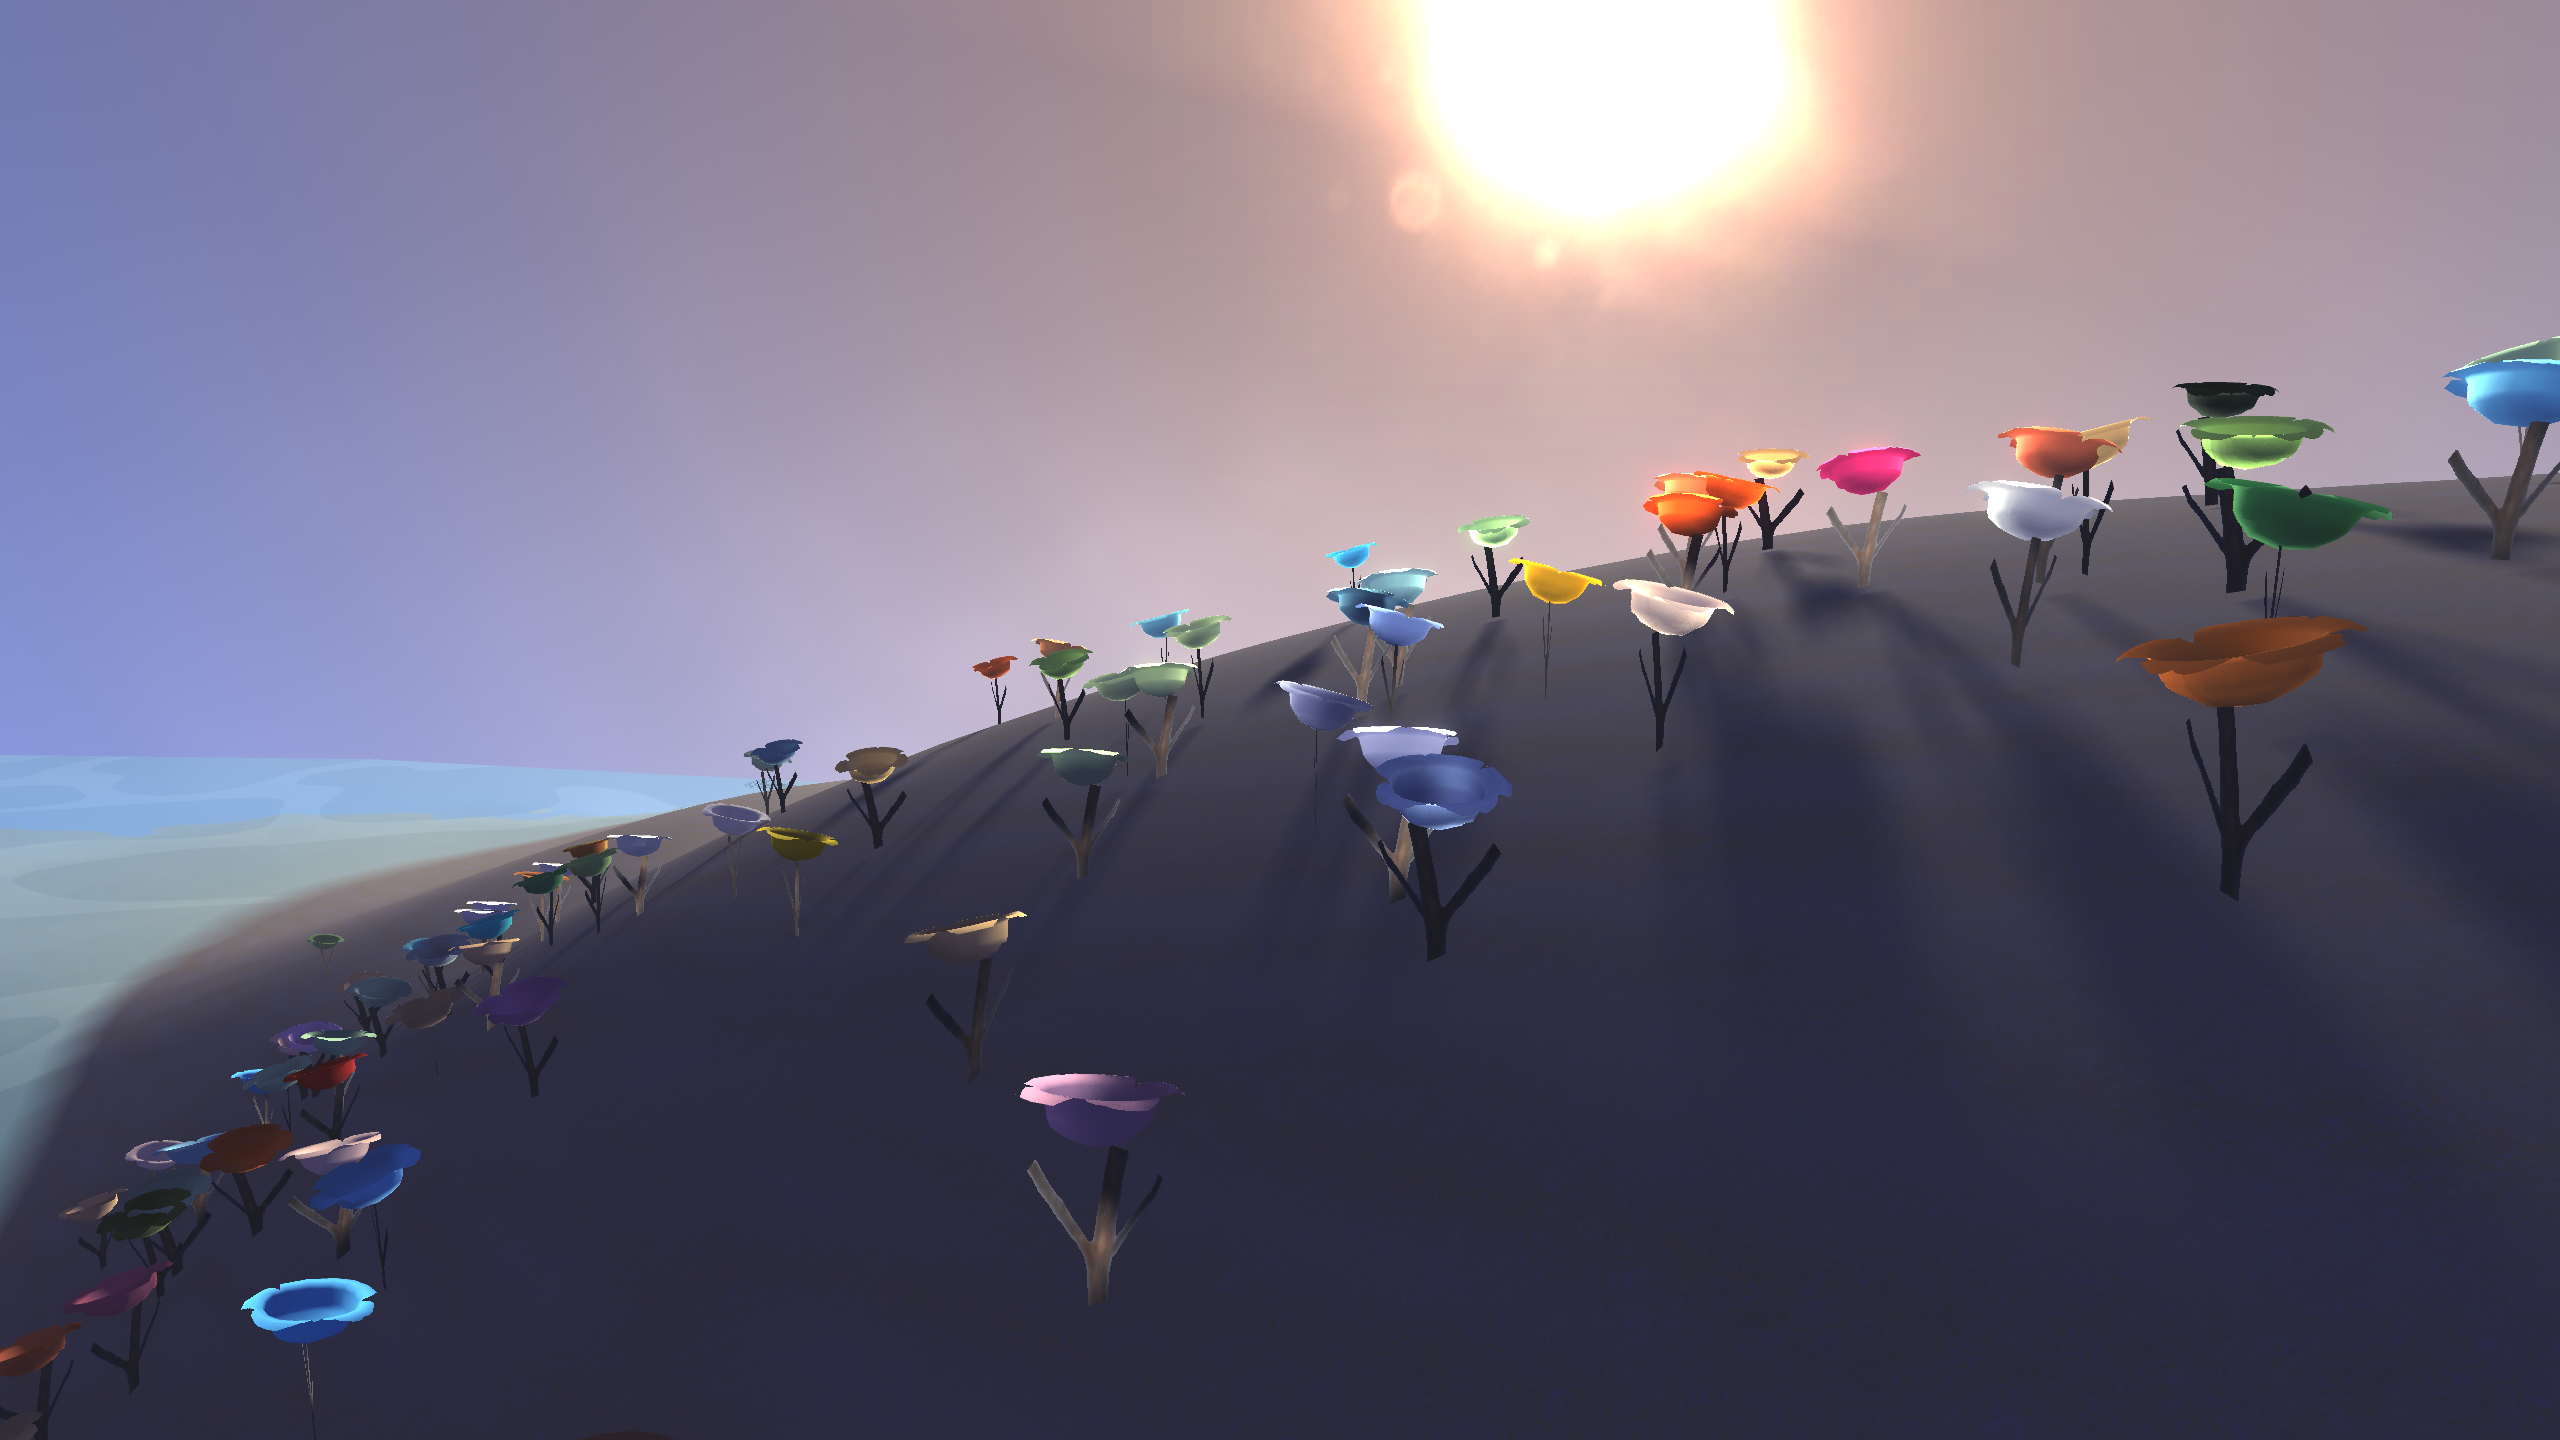 Unity_2018-08-07_23-46-54.png